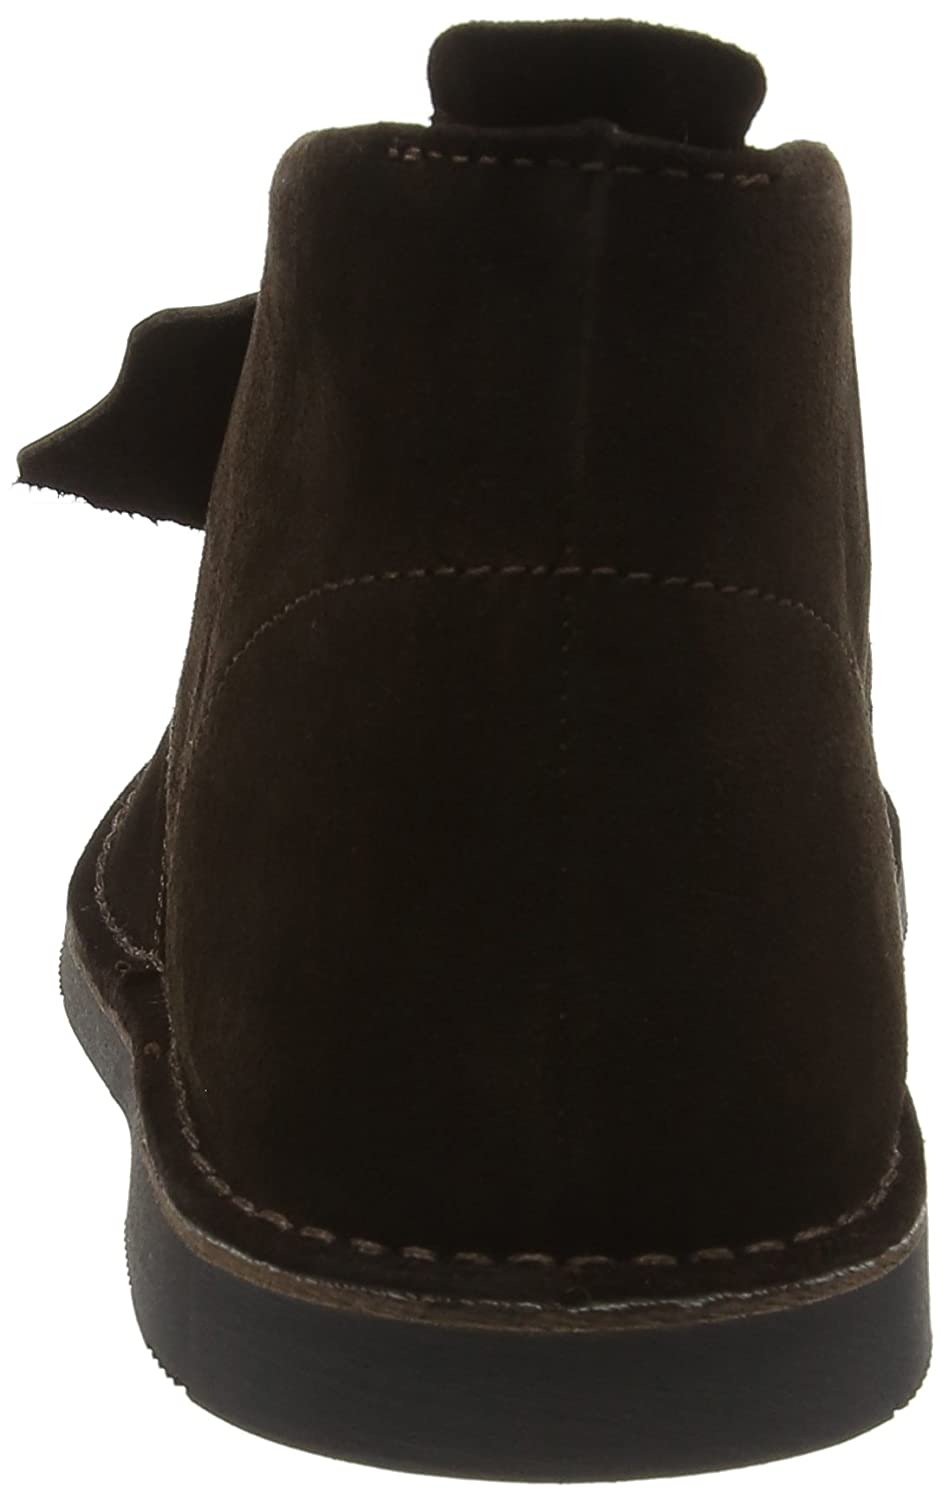 Mens Nolton Desert Slim Ankle Boots Hush Puppies Clearance Lowest Price Deals Cheap Price WgJHF